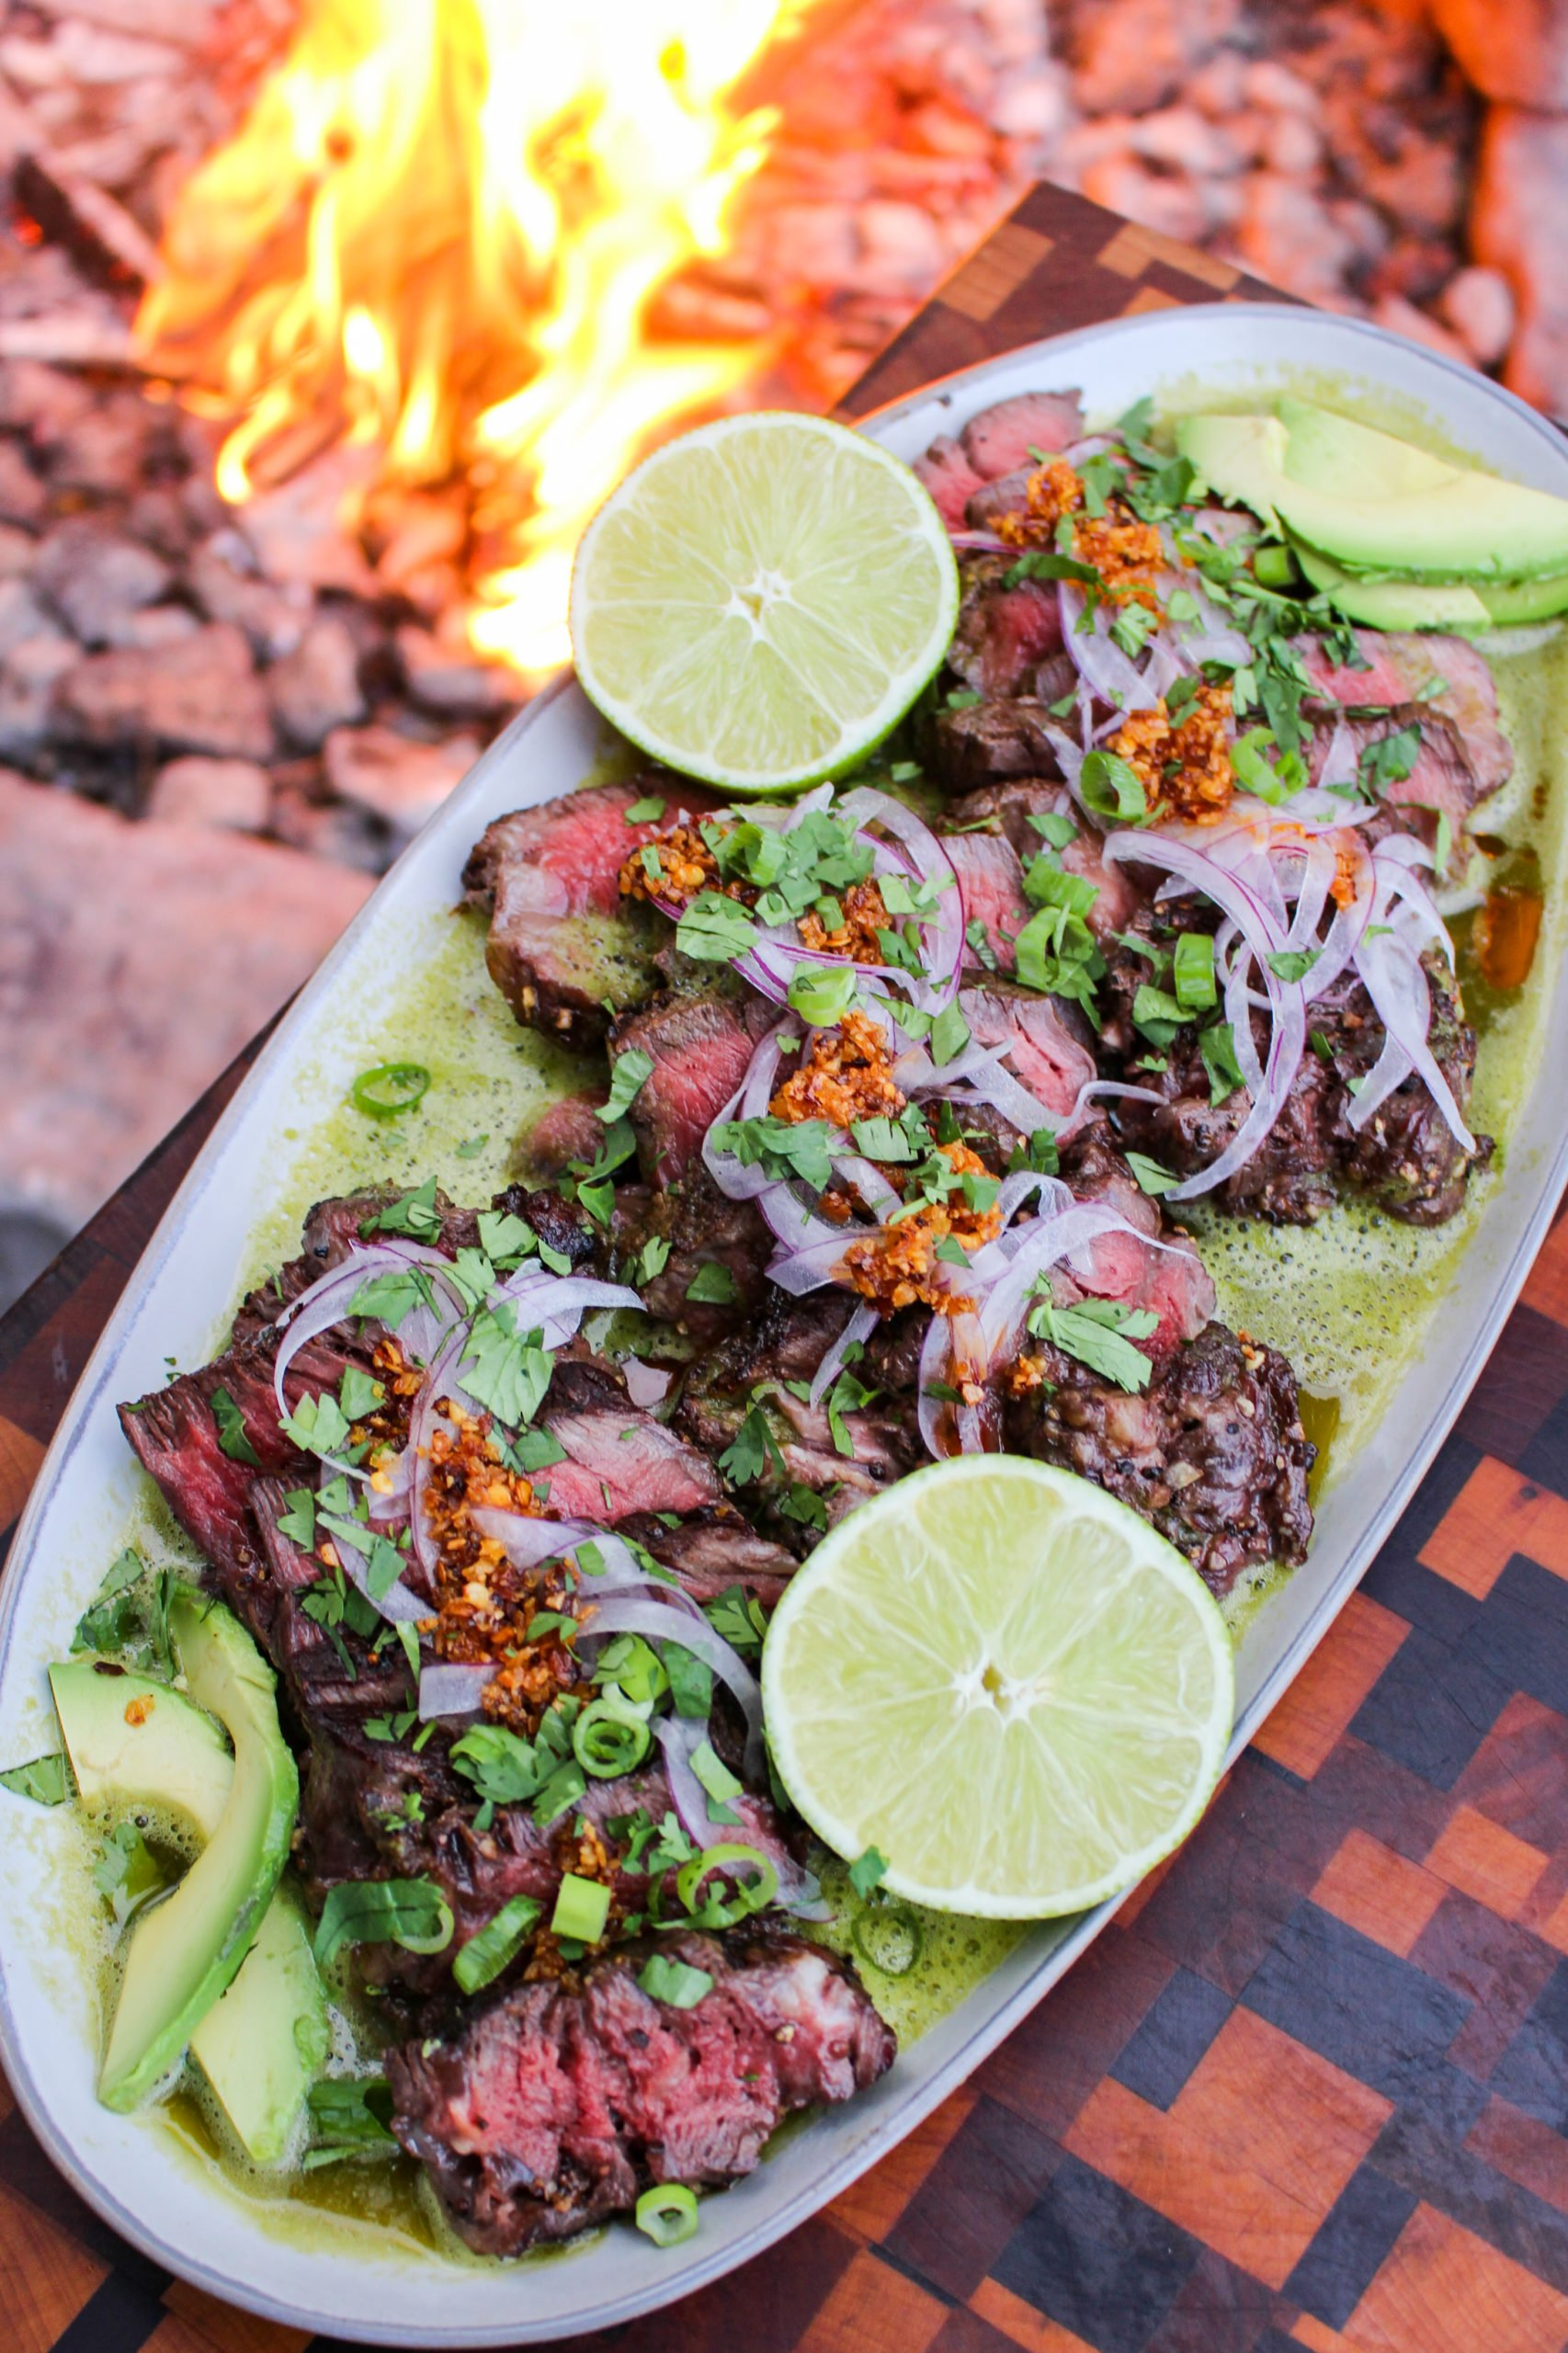 Grilled Filets with Chile Vinegar Sauce